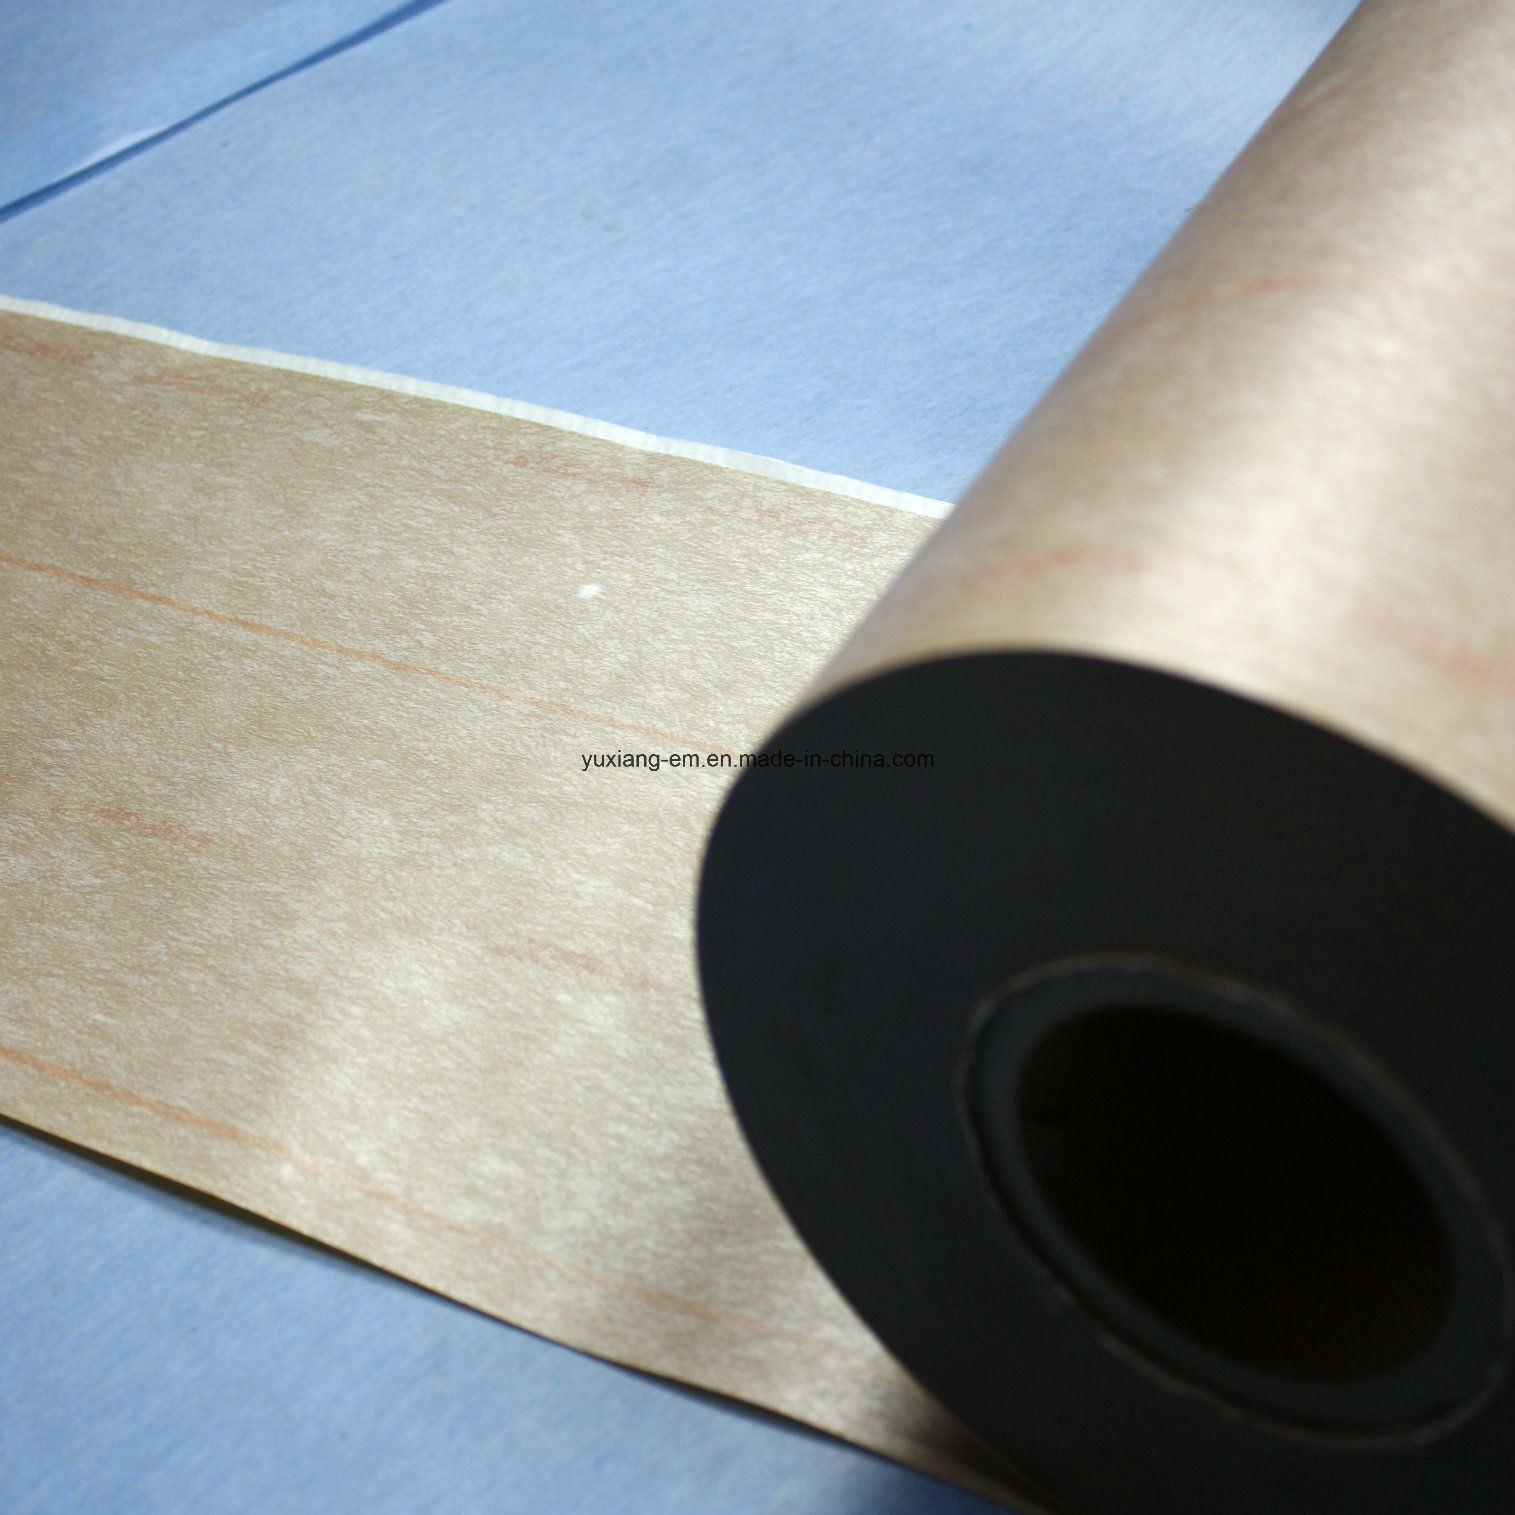 Flexible Laminates Electrical Insulation Material Nhn (UL certification)